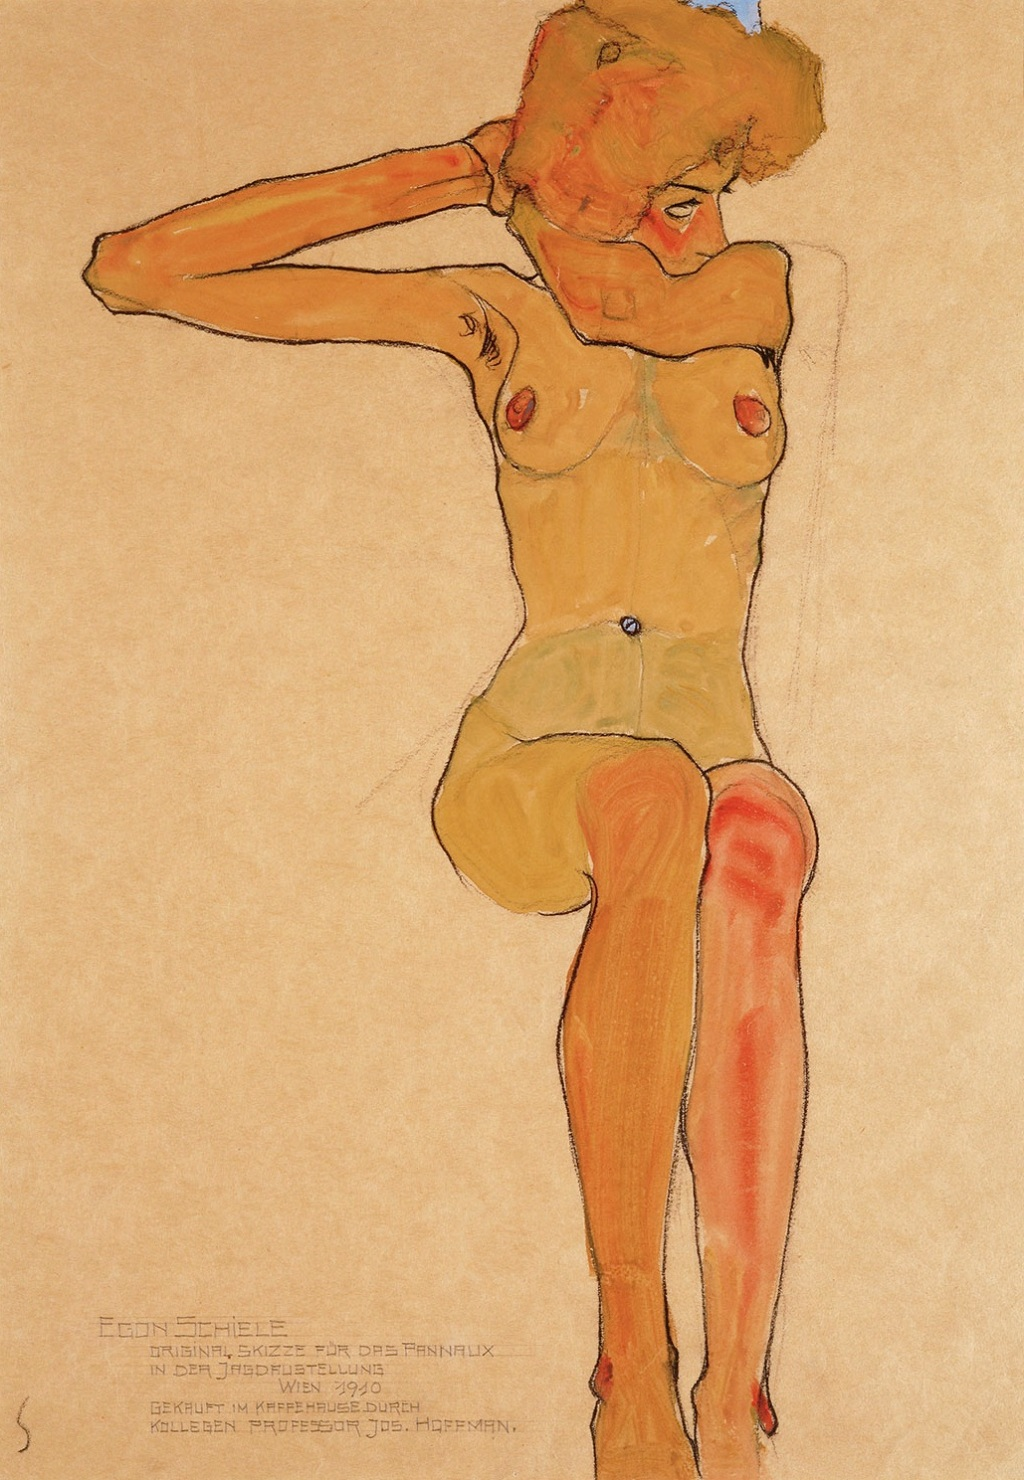 Seated Female Nude with Raised Arm (Gertrude Schiele), 1910